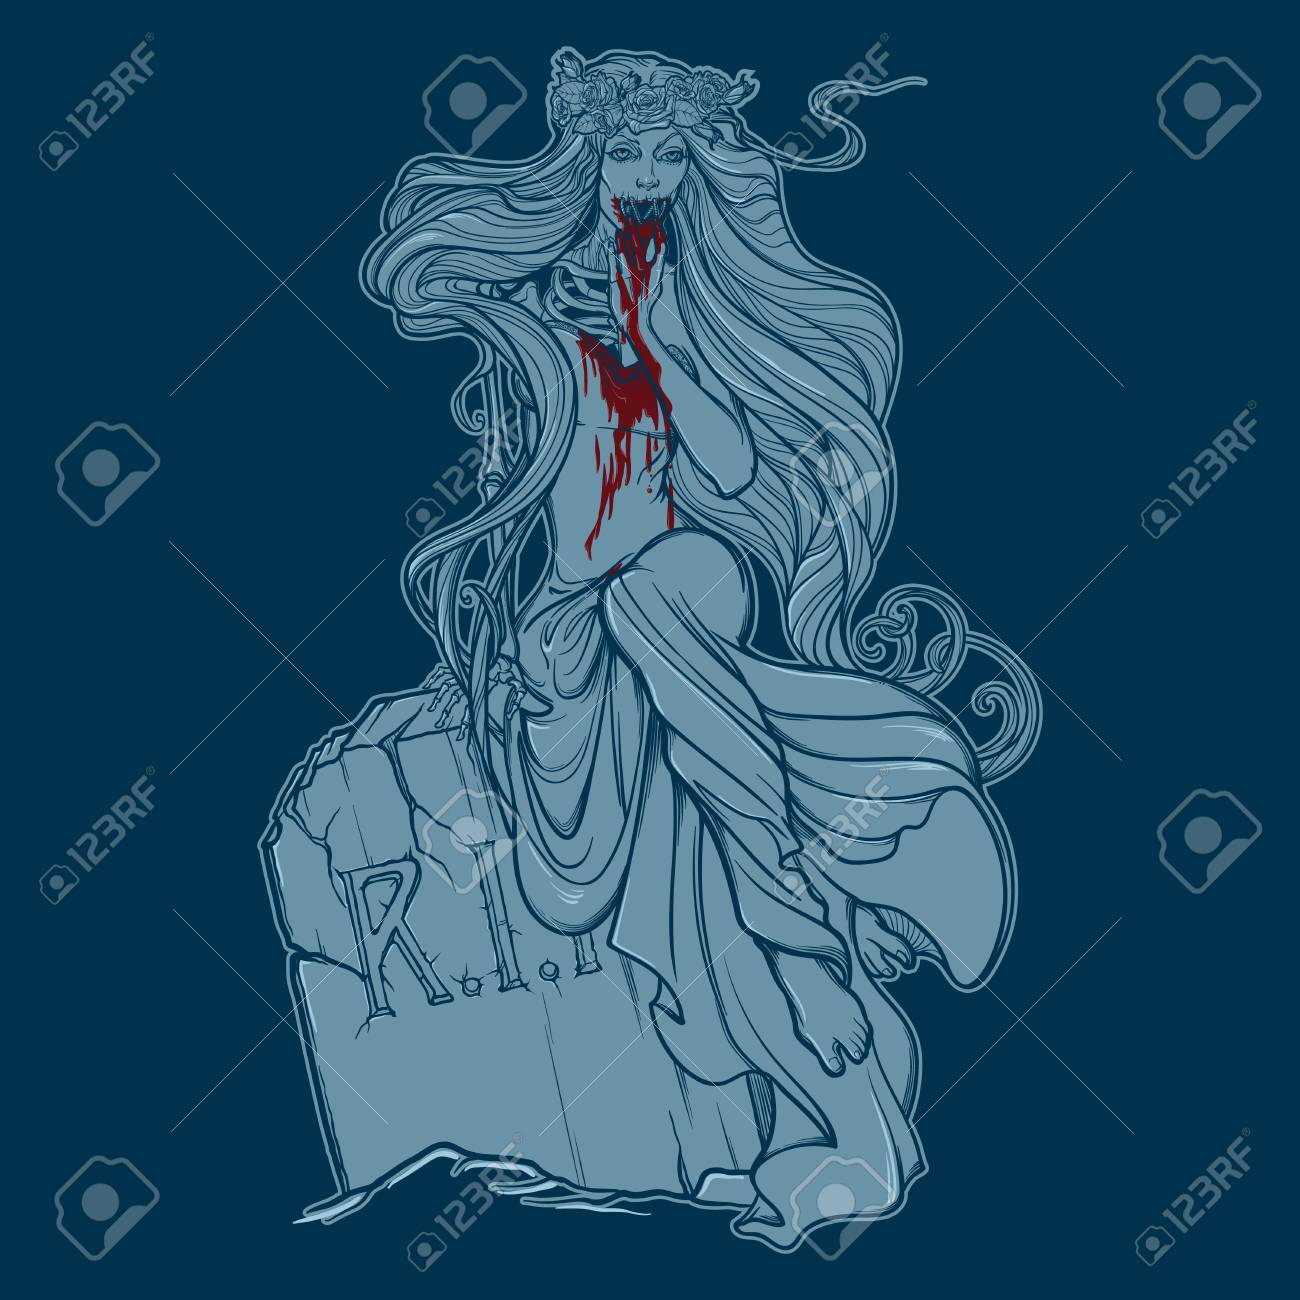 1300x1300 Zombie Girl With A Sewed Up Mouth. Royalty Free Cliparts, Vectors